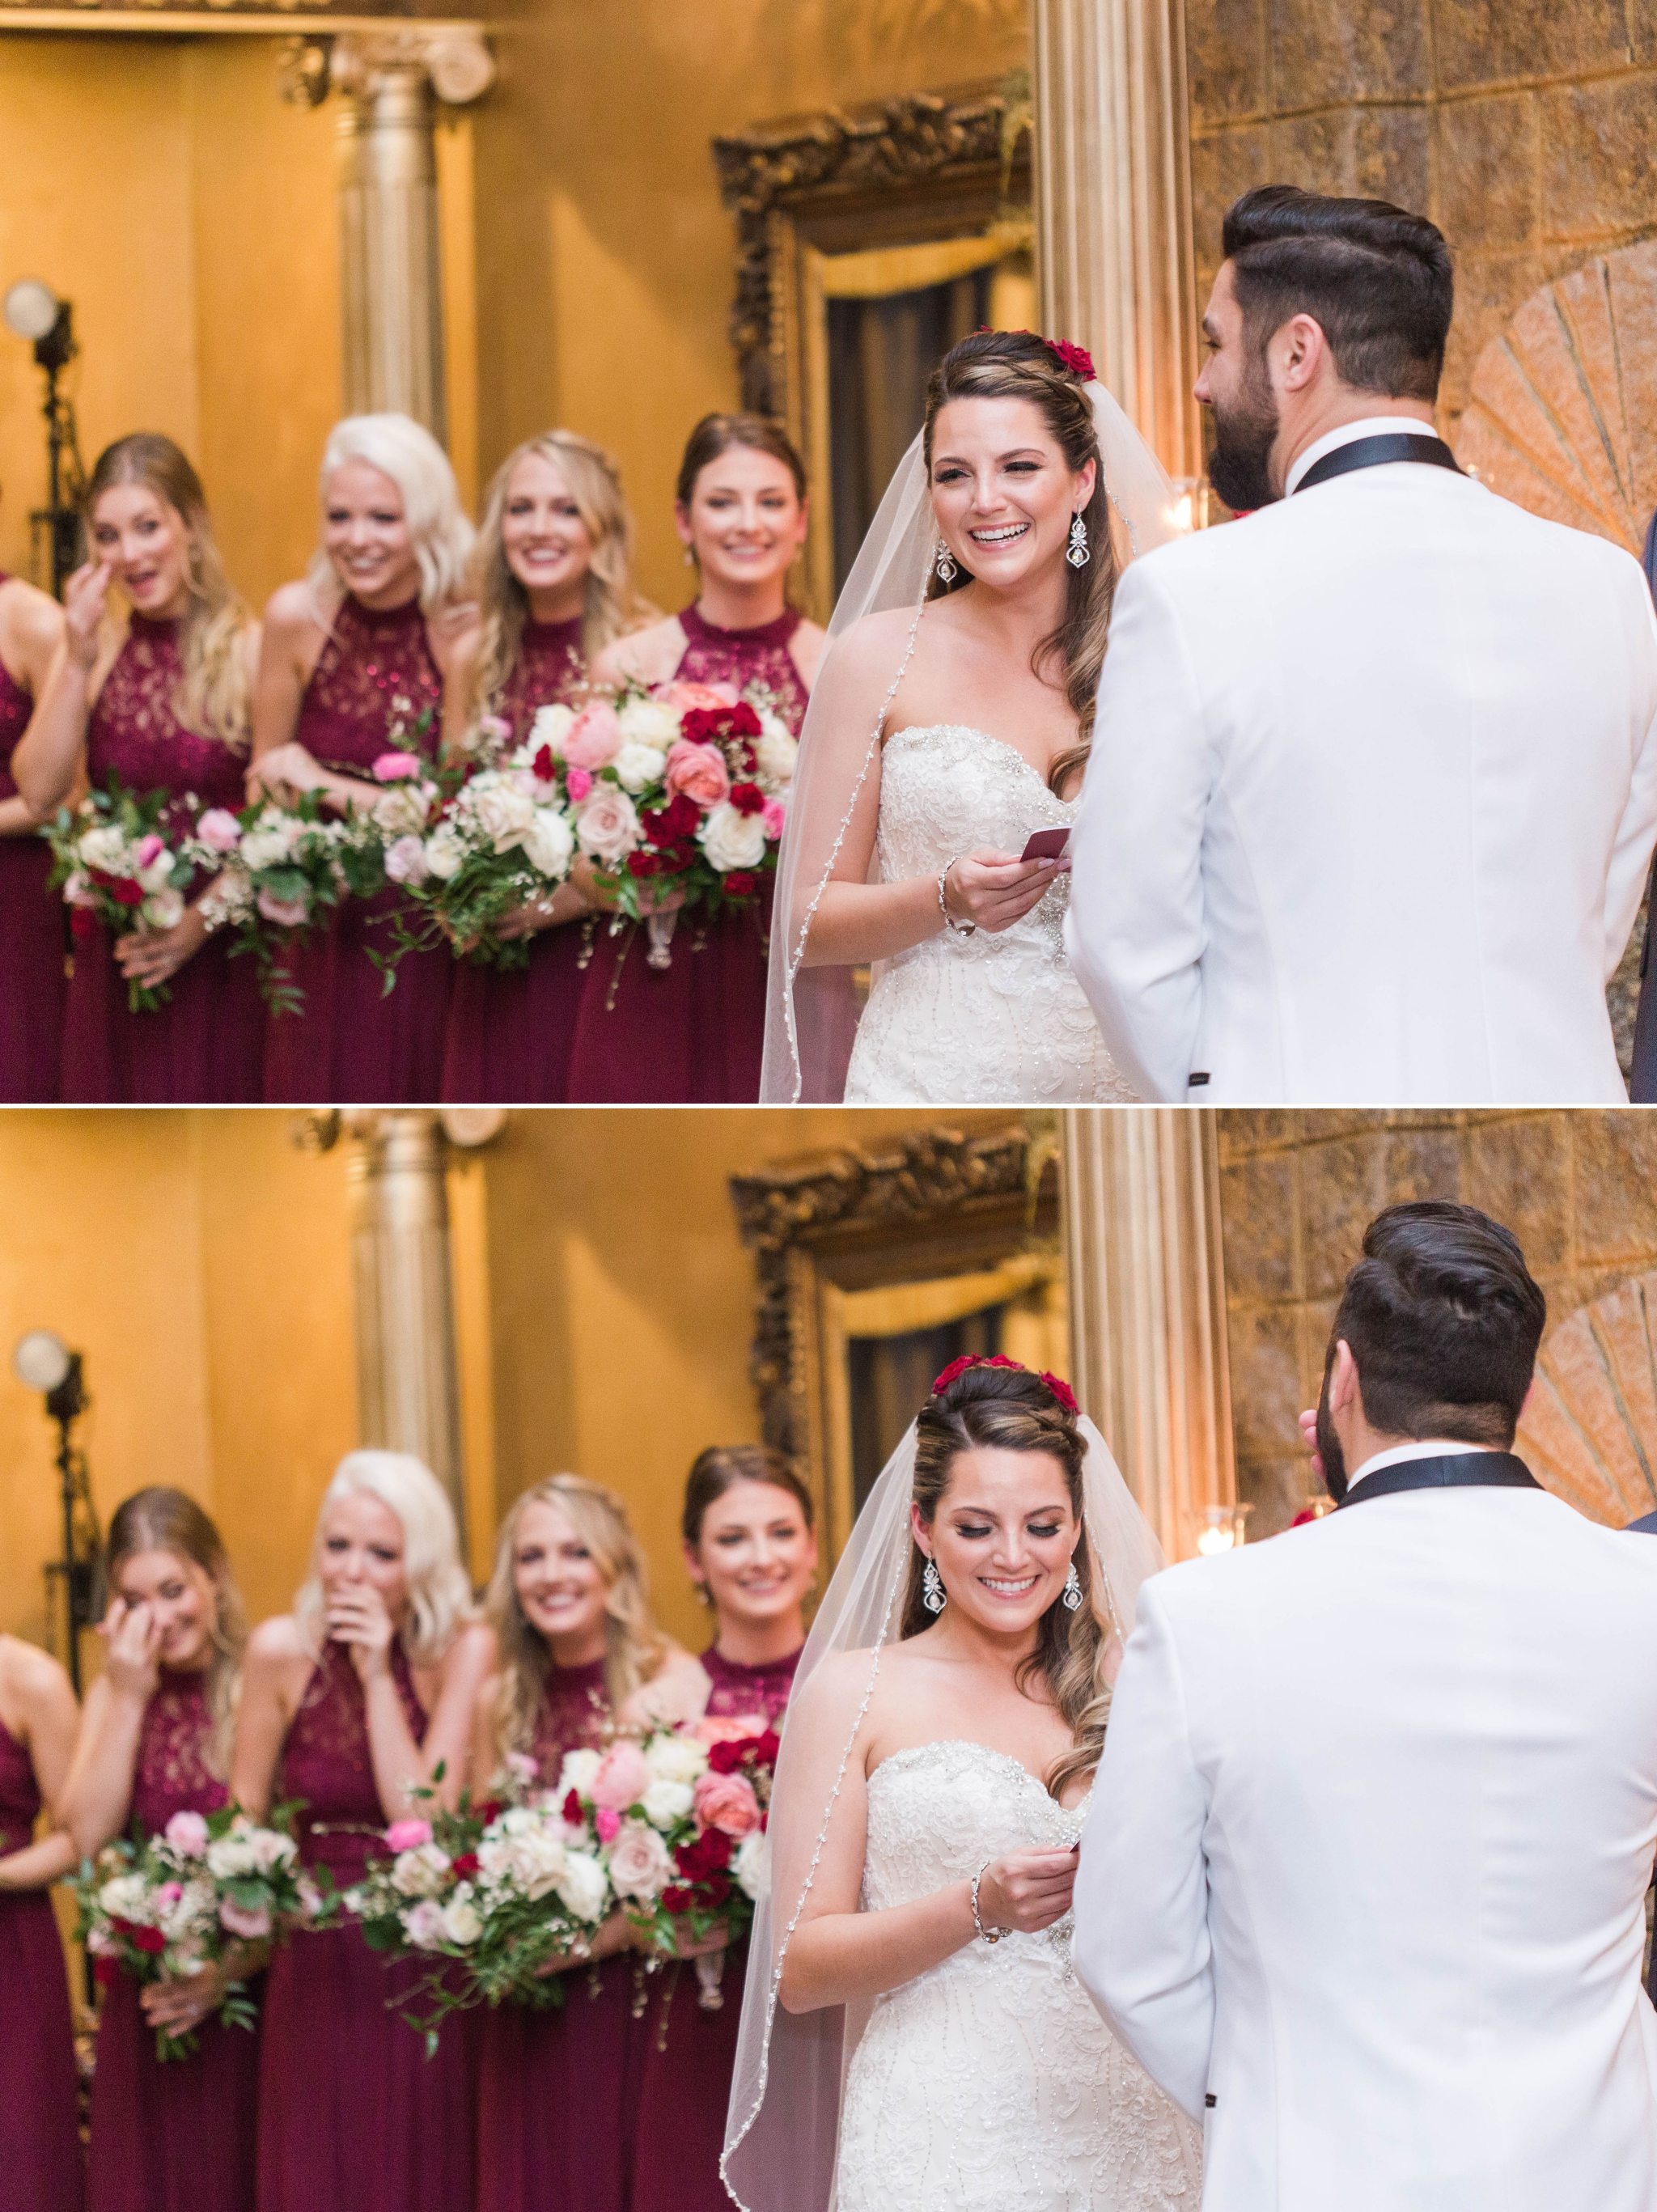 Bride laughing and crying during the wedding vows - Honolulu Oahu Hawaii Wedding Photographer